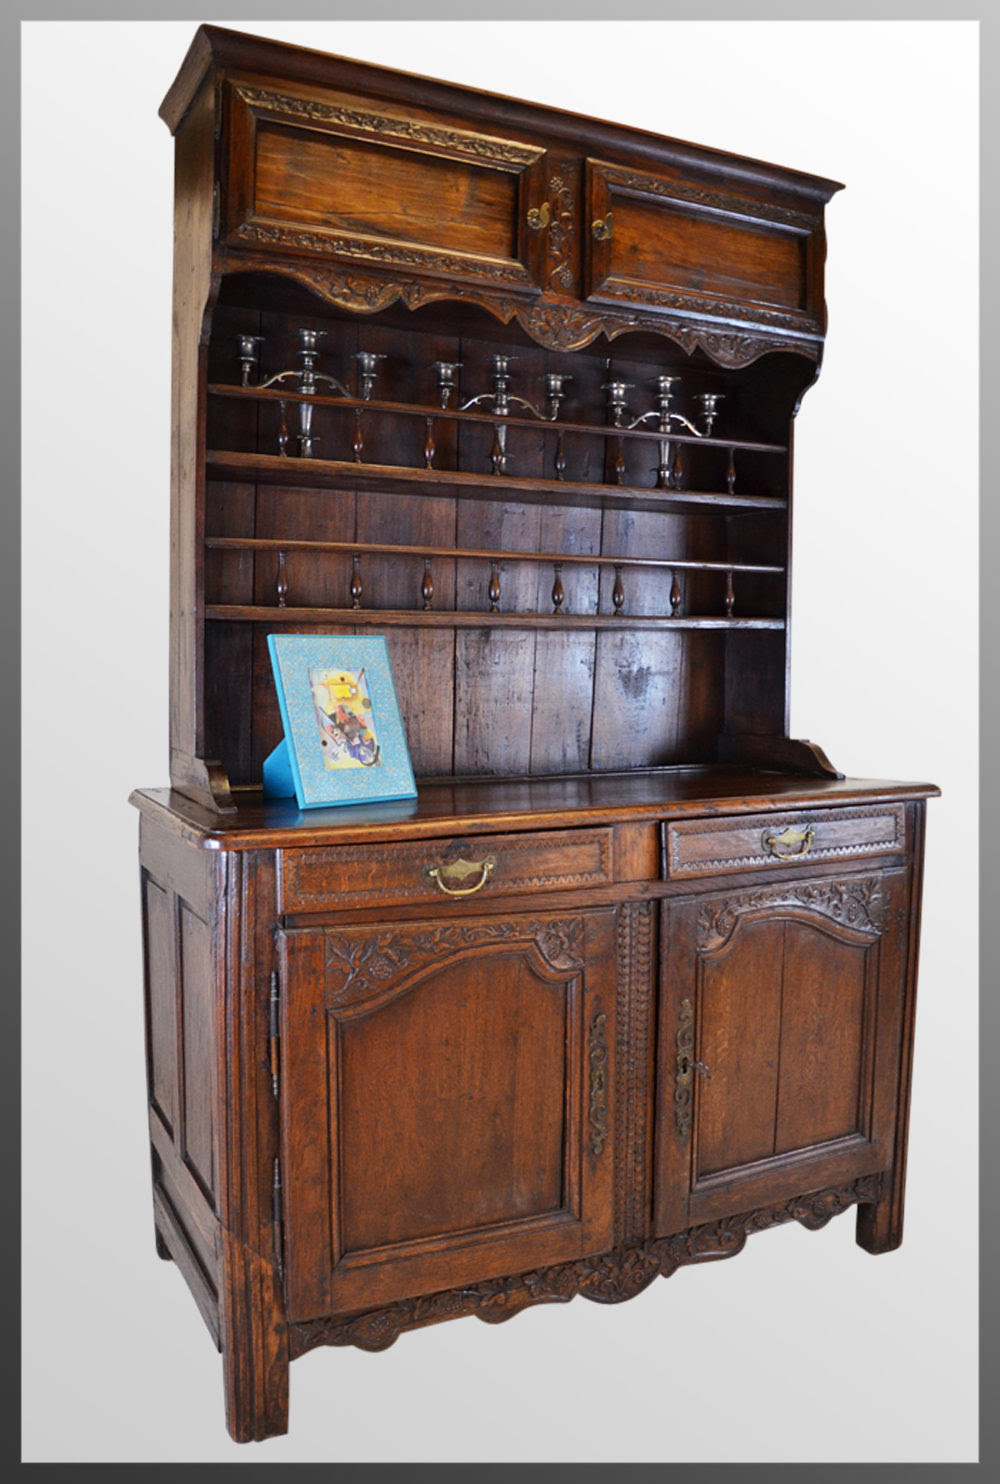 French Country Dresser Kitchen Buffet Cabinet - Antiques Atlas